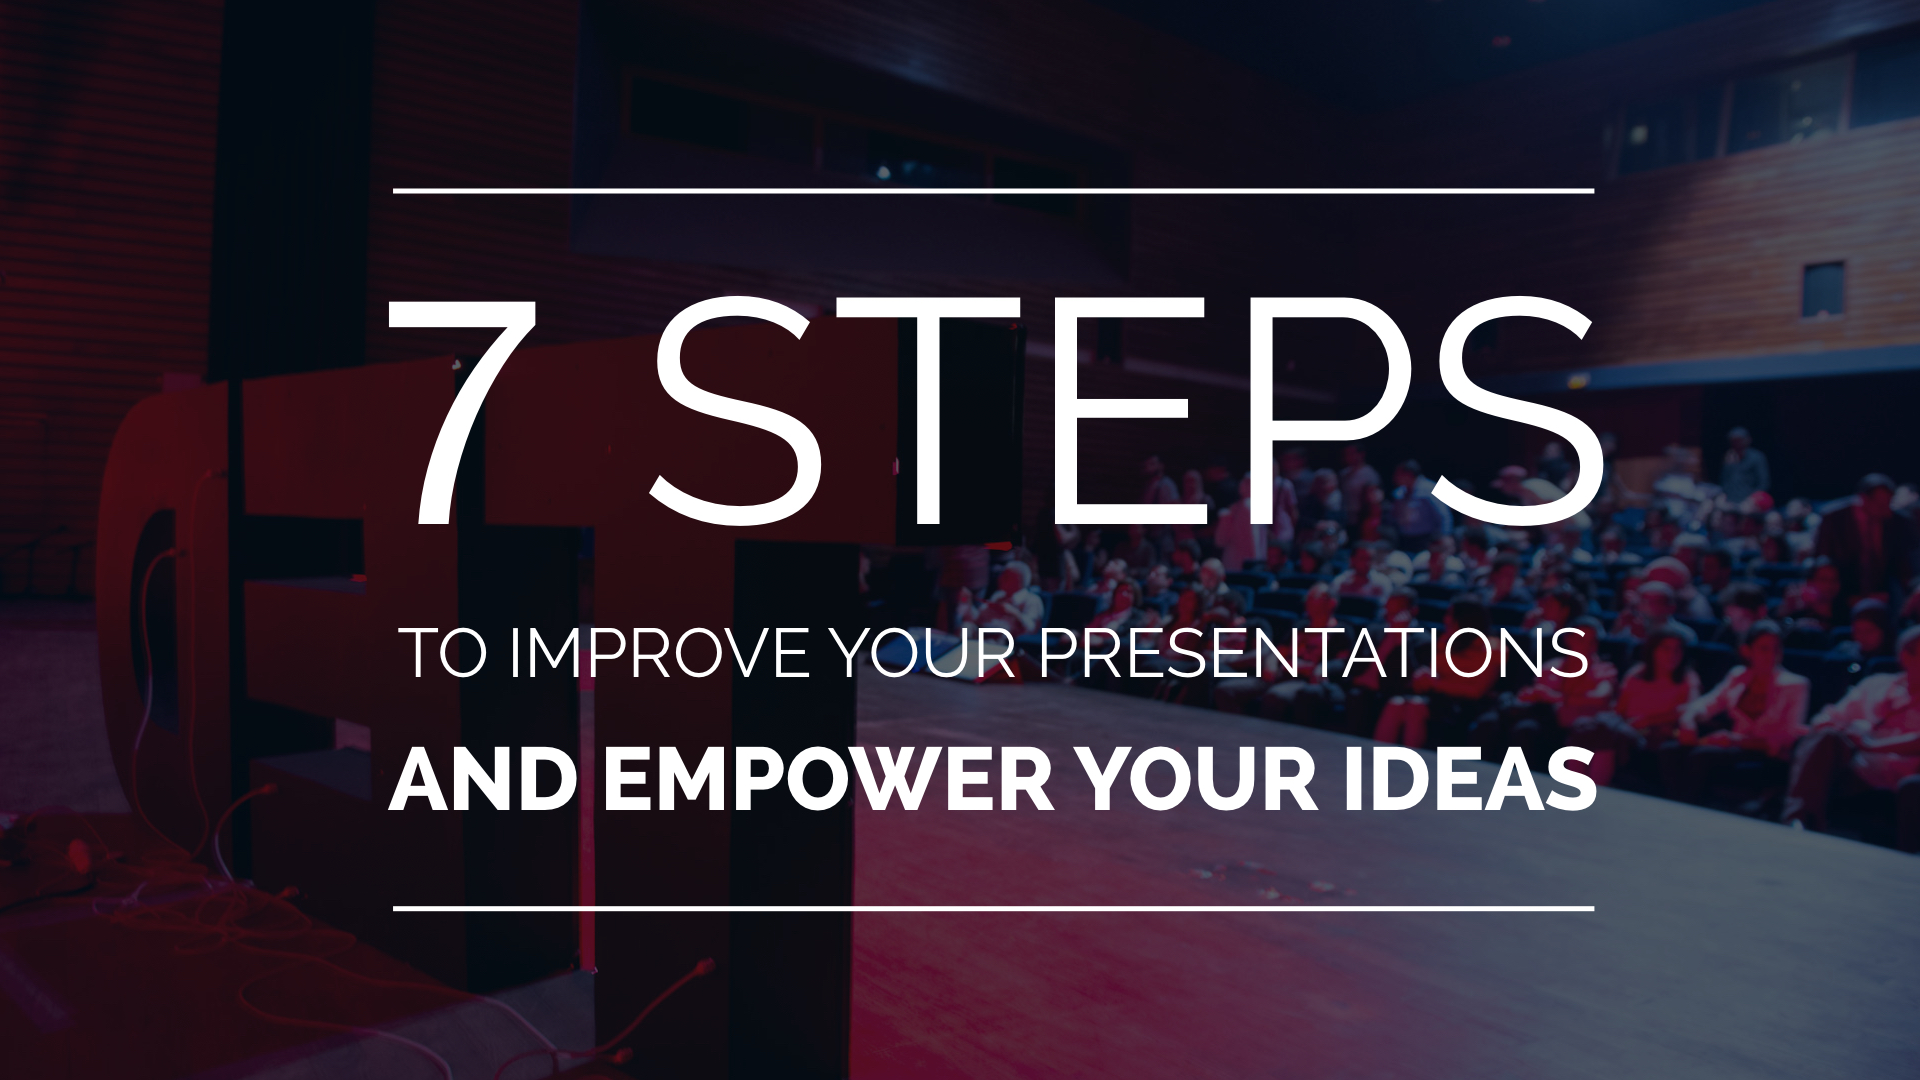 Workshop : 7 steps to improve your presentations and empower your ideas